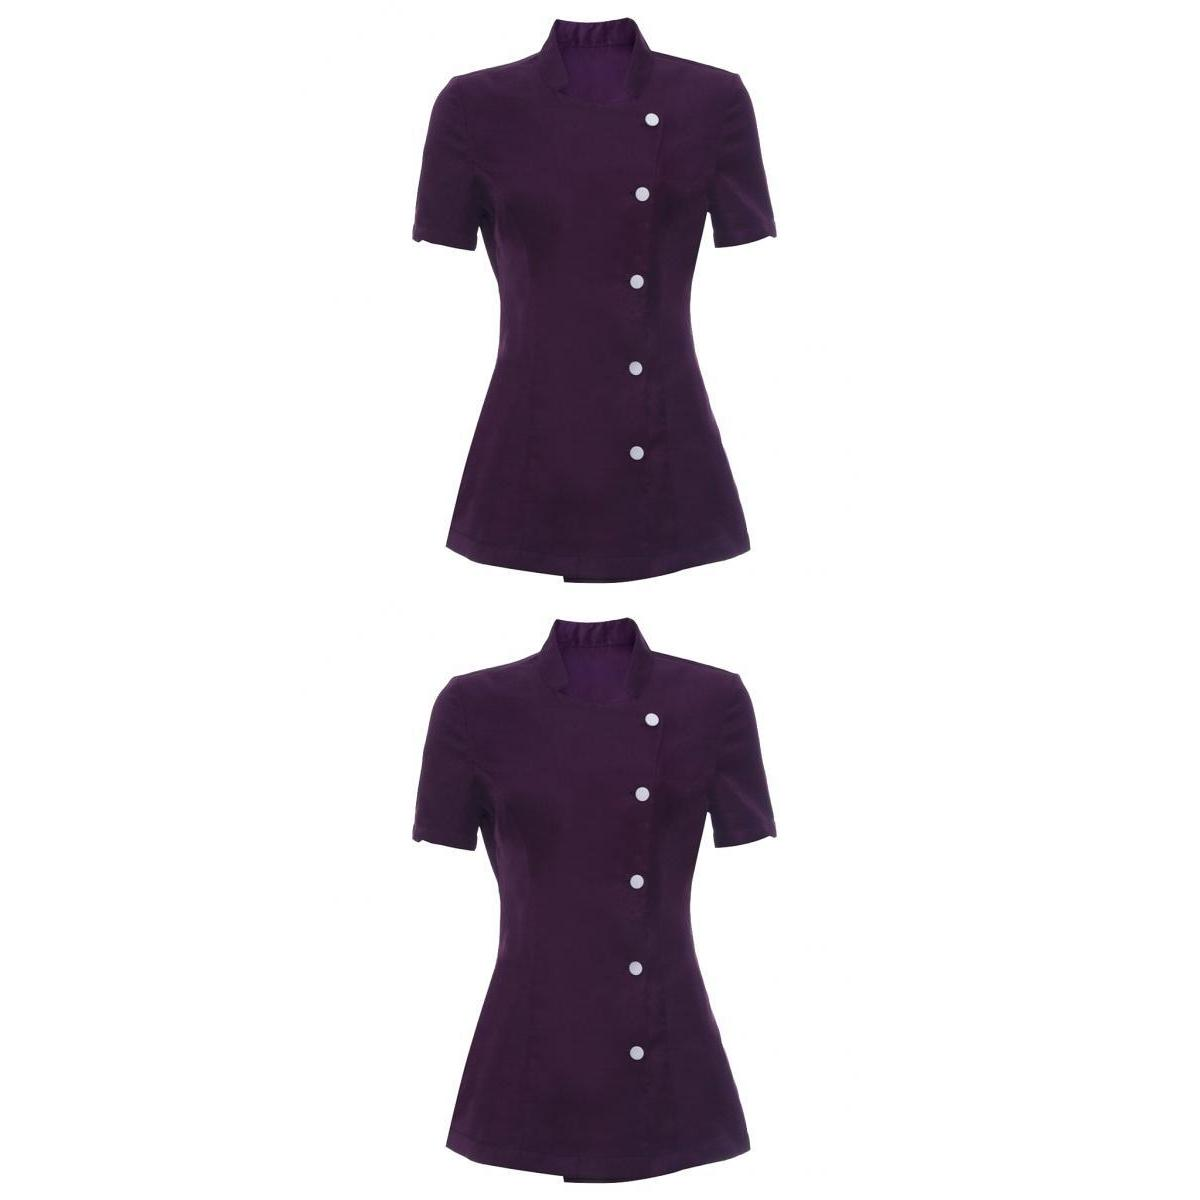 2 Pieces Salon Women Tunic Beautician Nail Spa Uniform Health Work,Purple